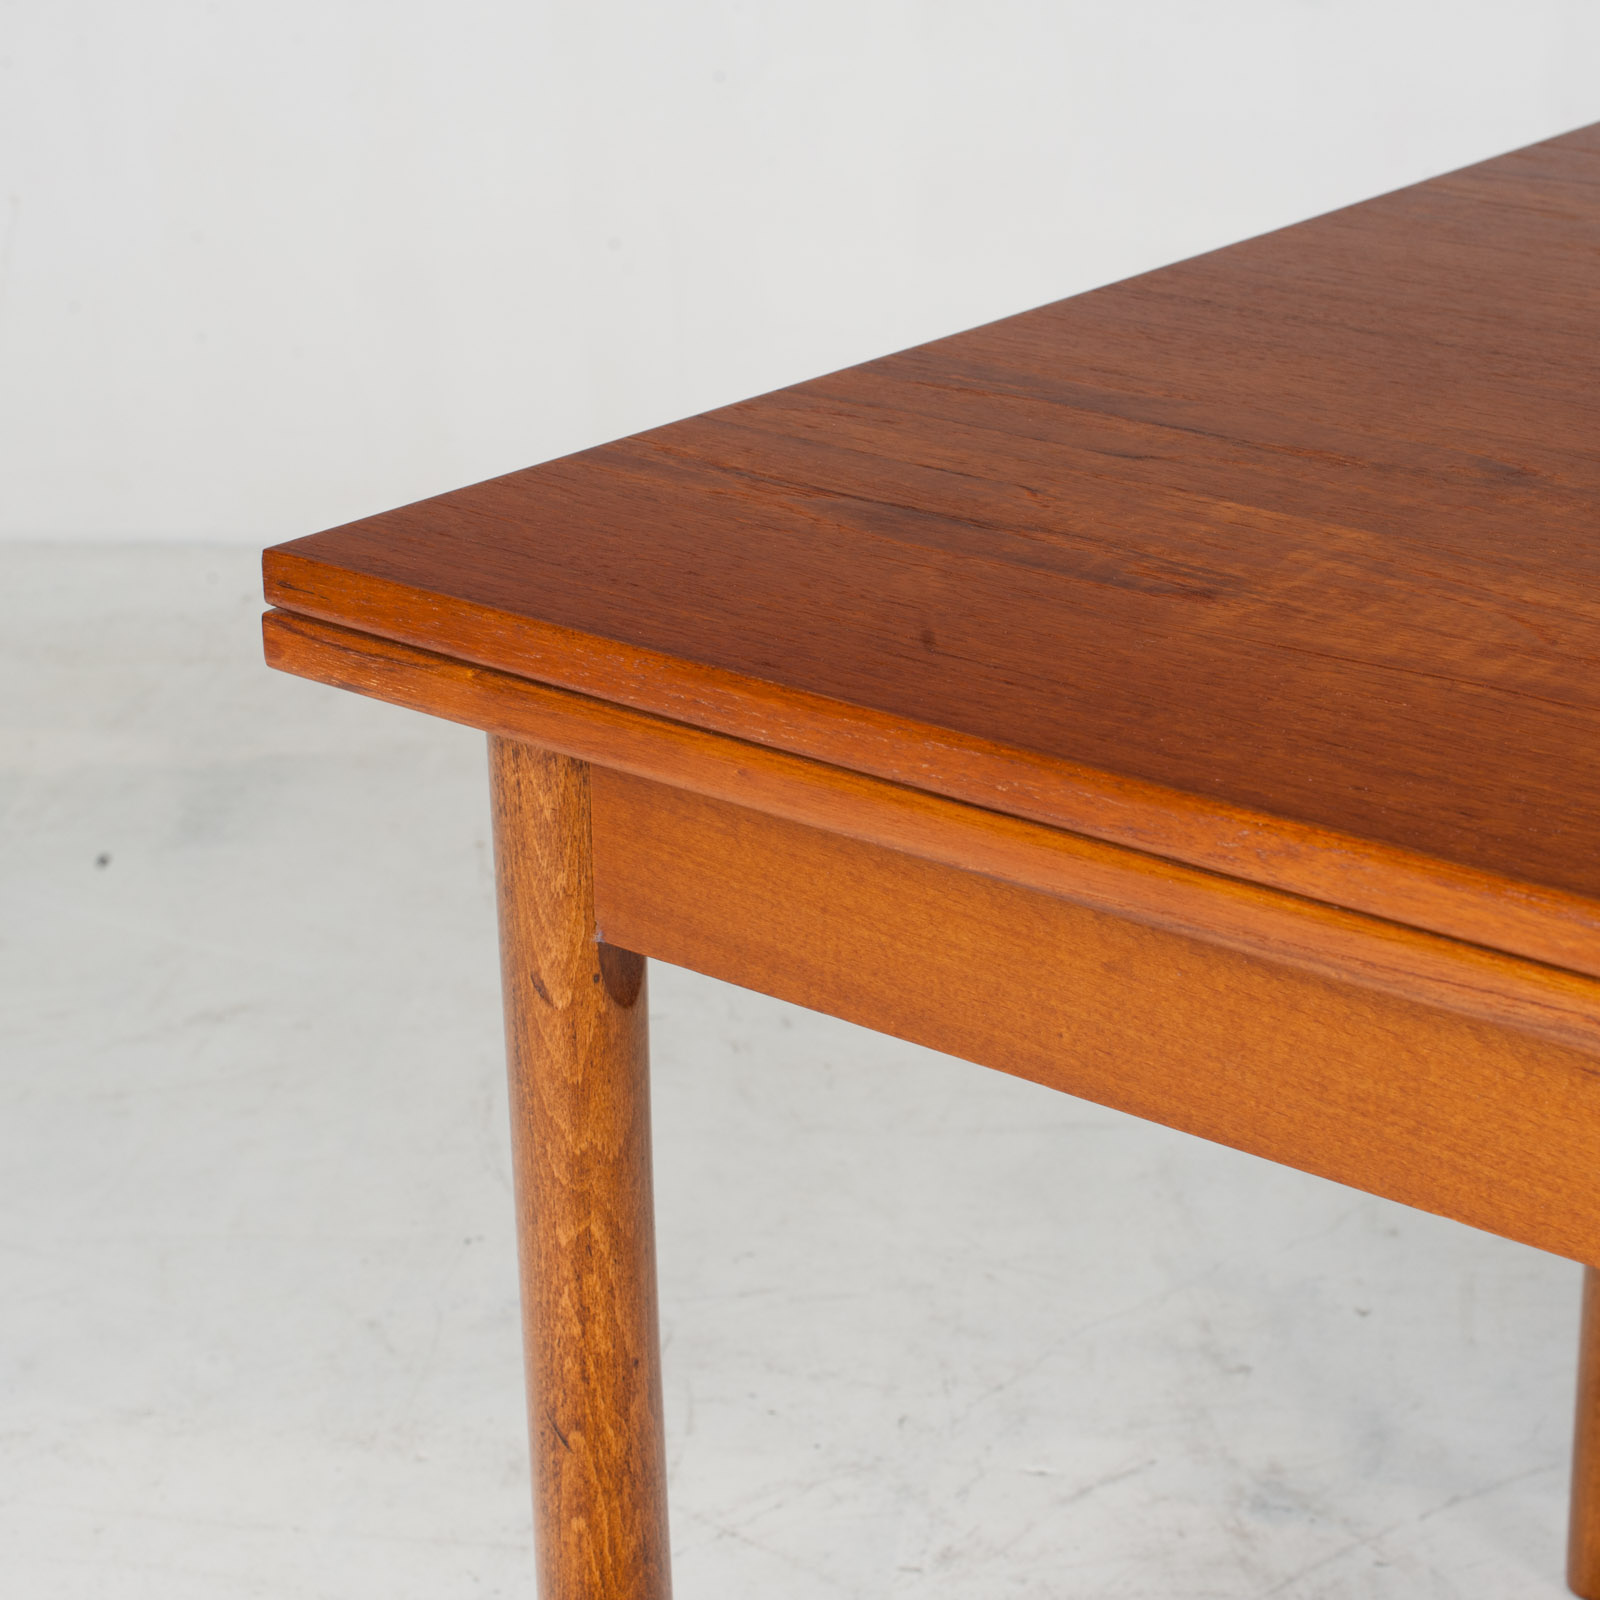 Rectangular Dining Table In Teak With Concealed Extentions 1960s Denmark3